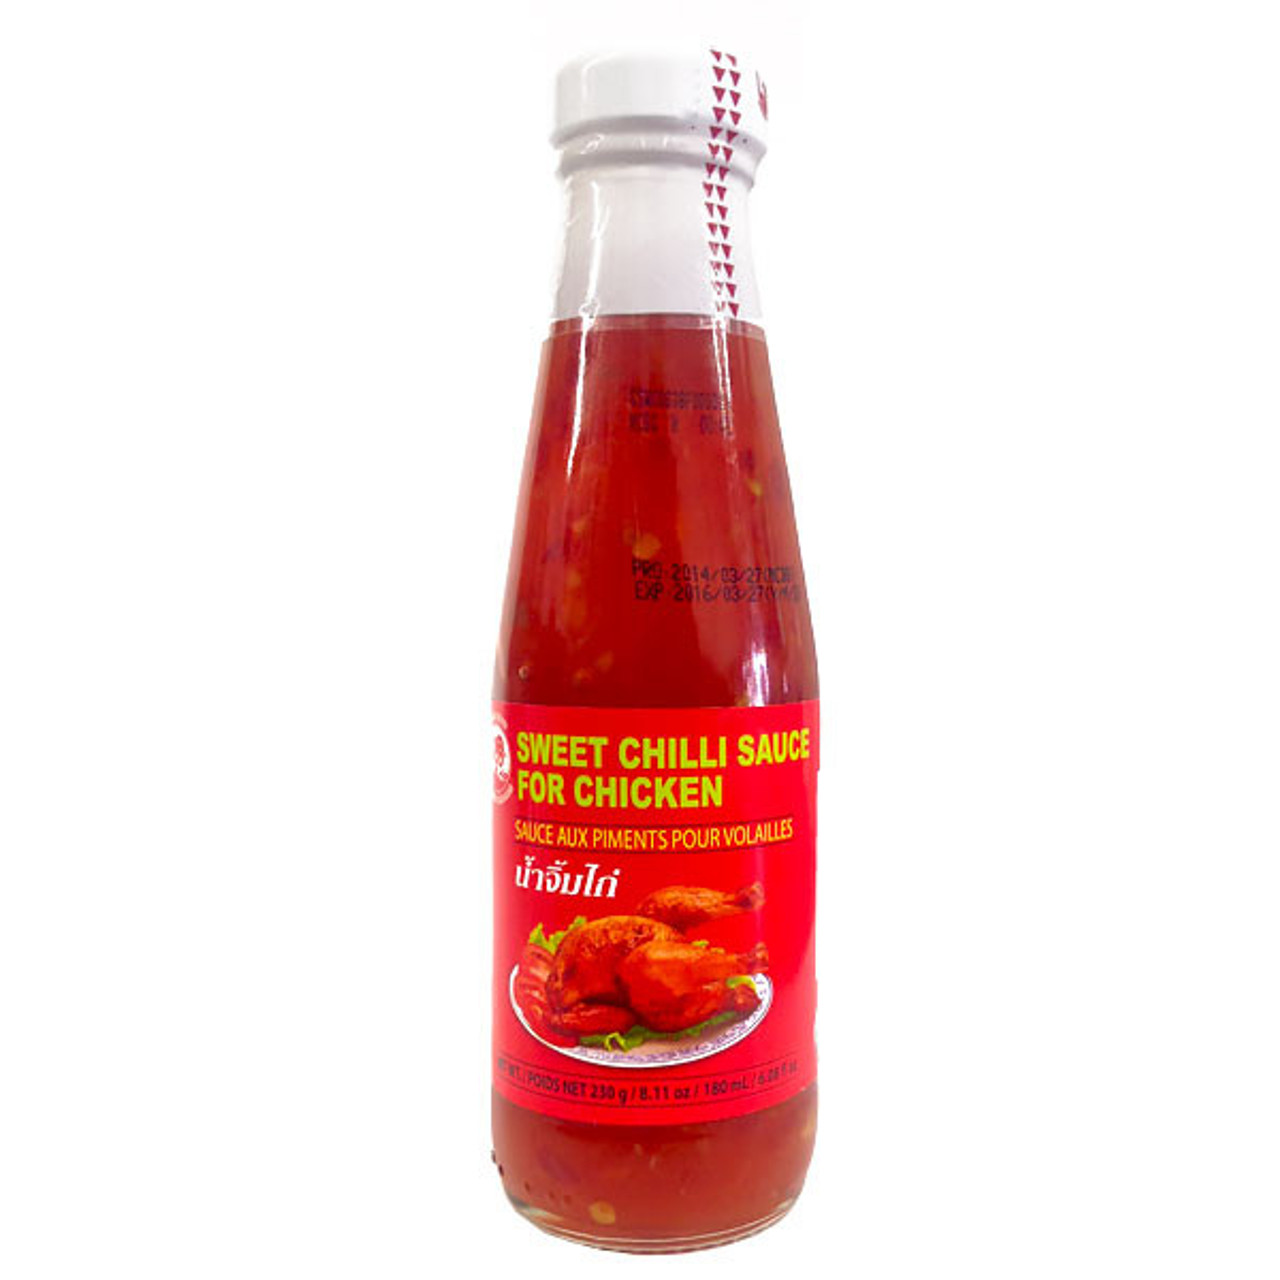 Sweet Chilli Sauce For Chicken 230g The Gourmet Warehouse